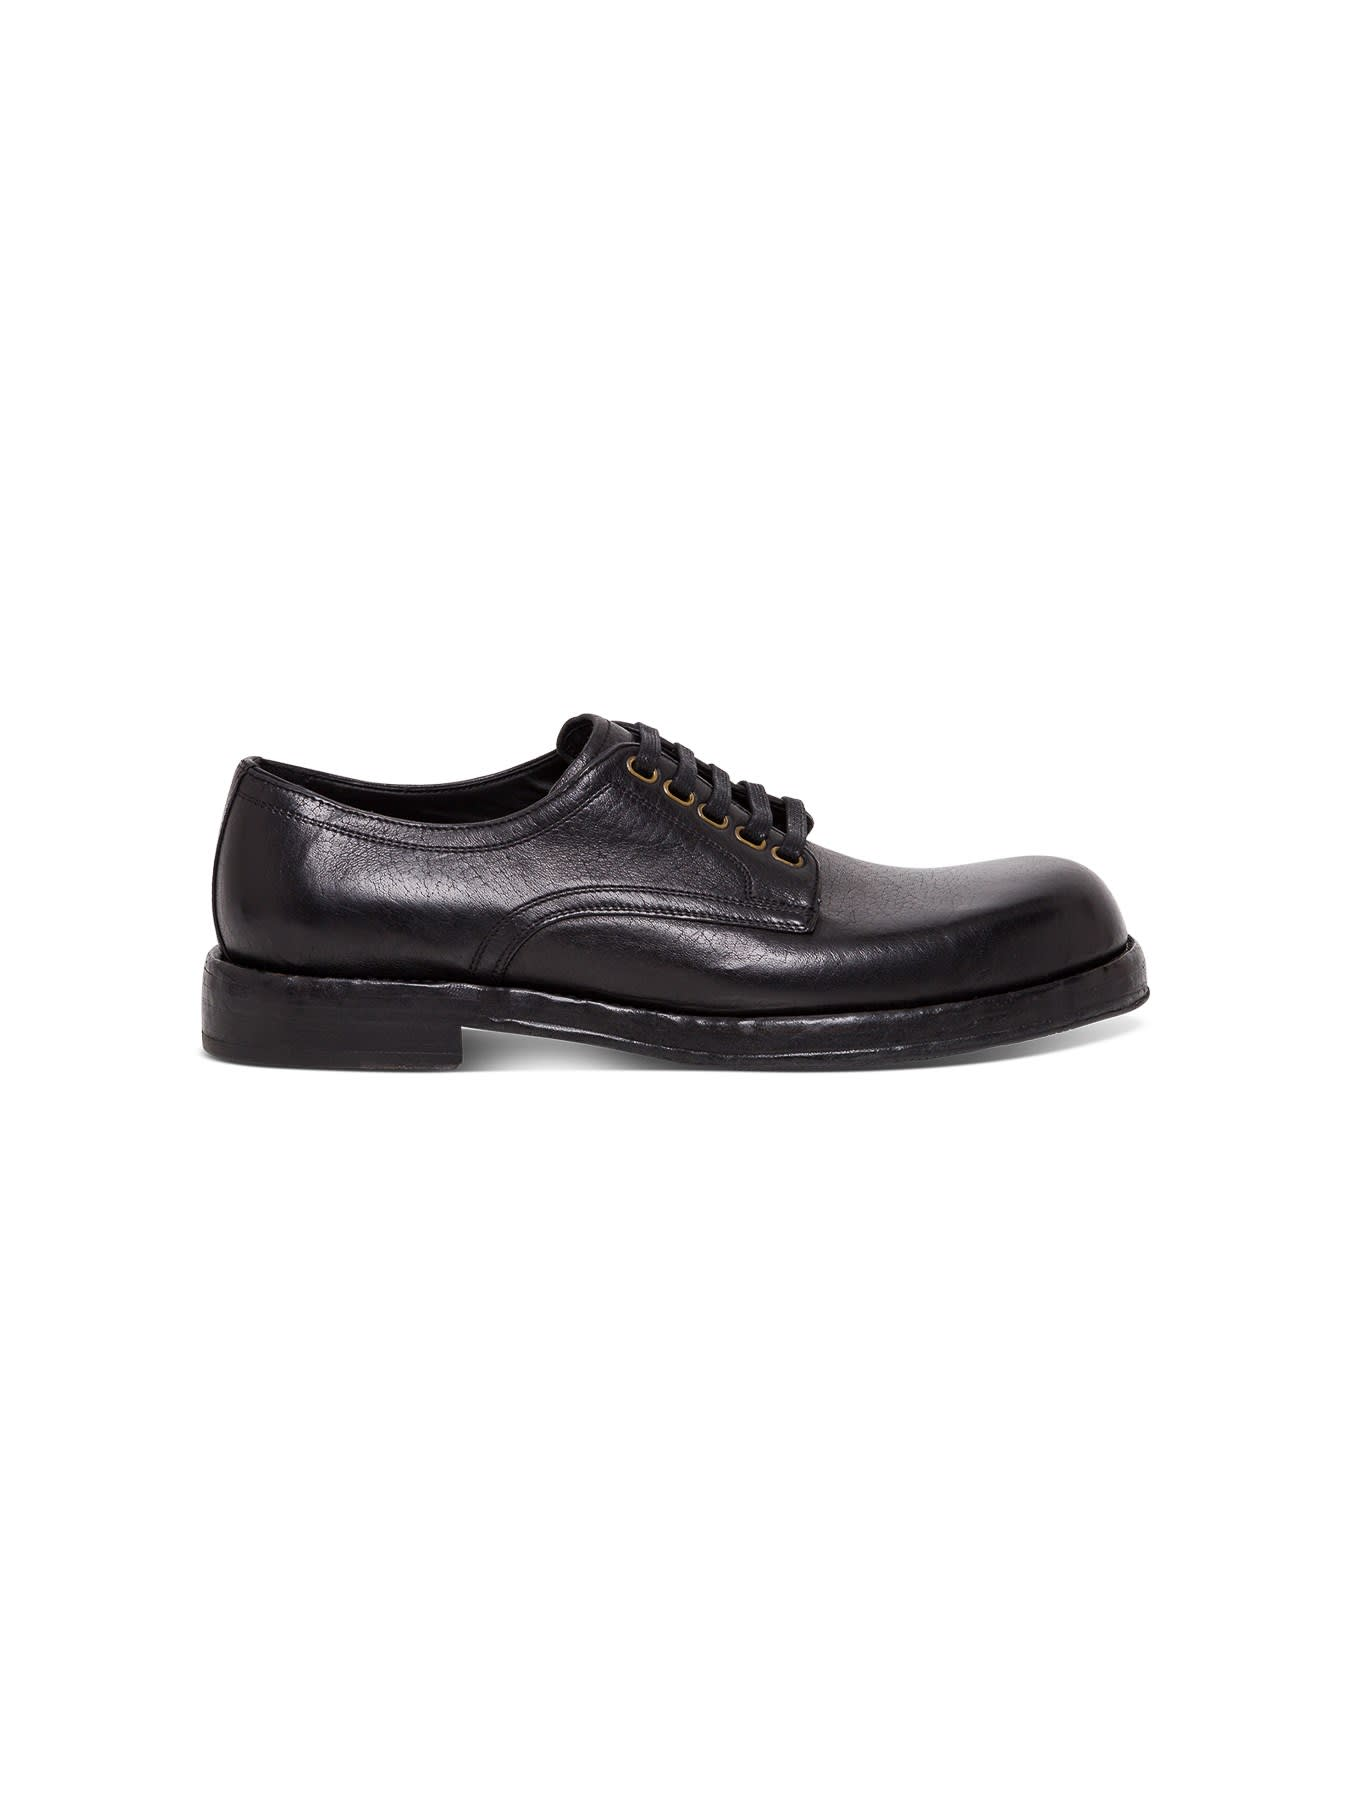 Dolce & Gabbana Derby Perugino Lace-up Shoes